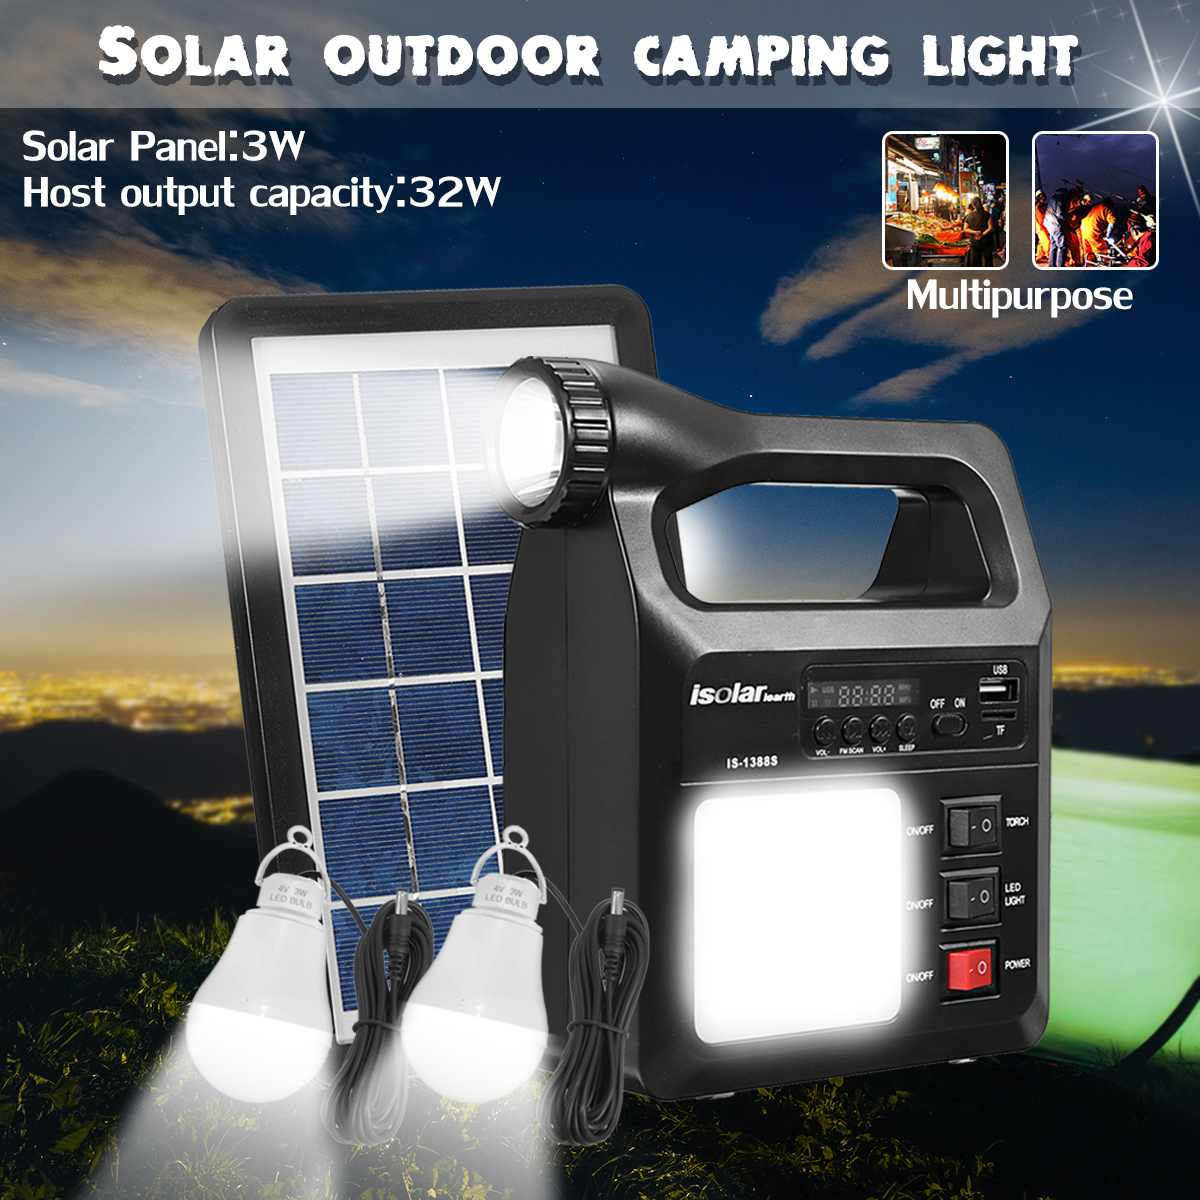 4V 8000mAh Solar Generator System +3W Waterproof Solar Panel +2*LED Lamp Bulb Multifunction Generator For Outdoor Camping sennheiser hd 201 black 500155